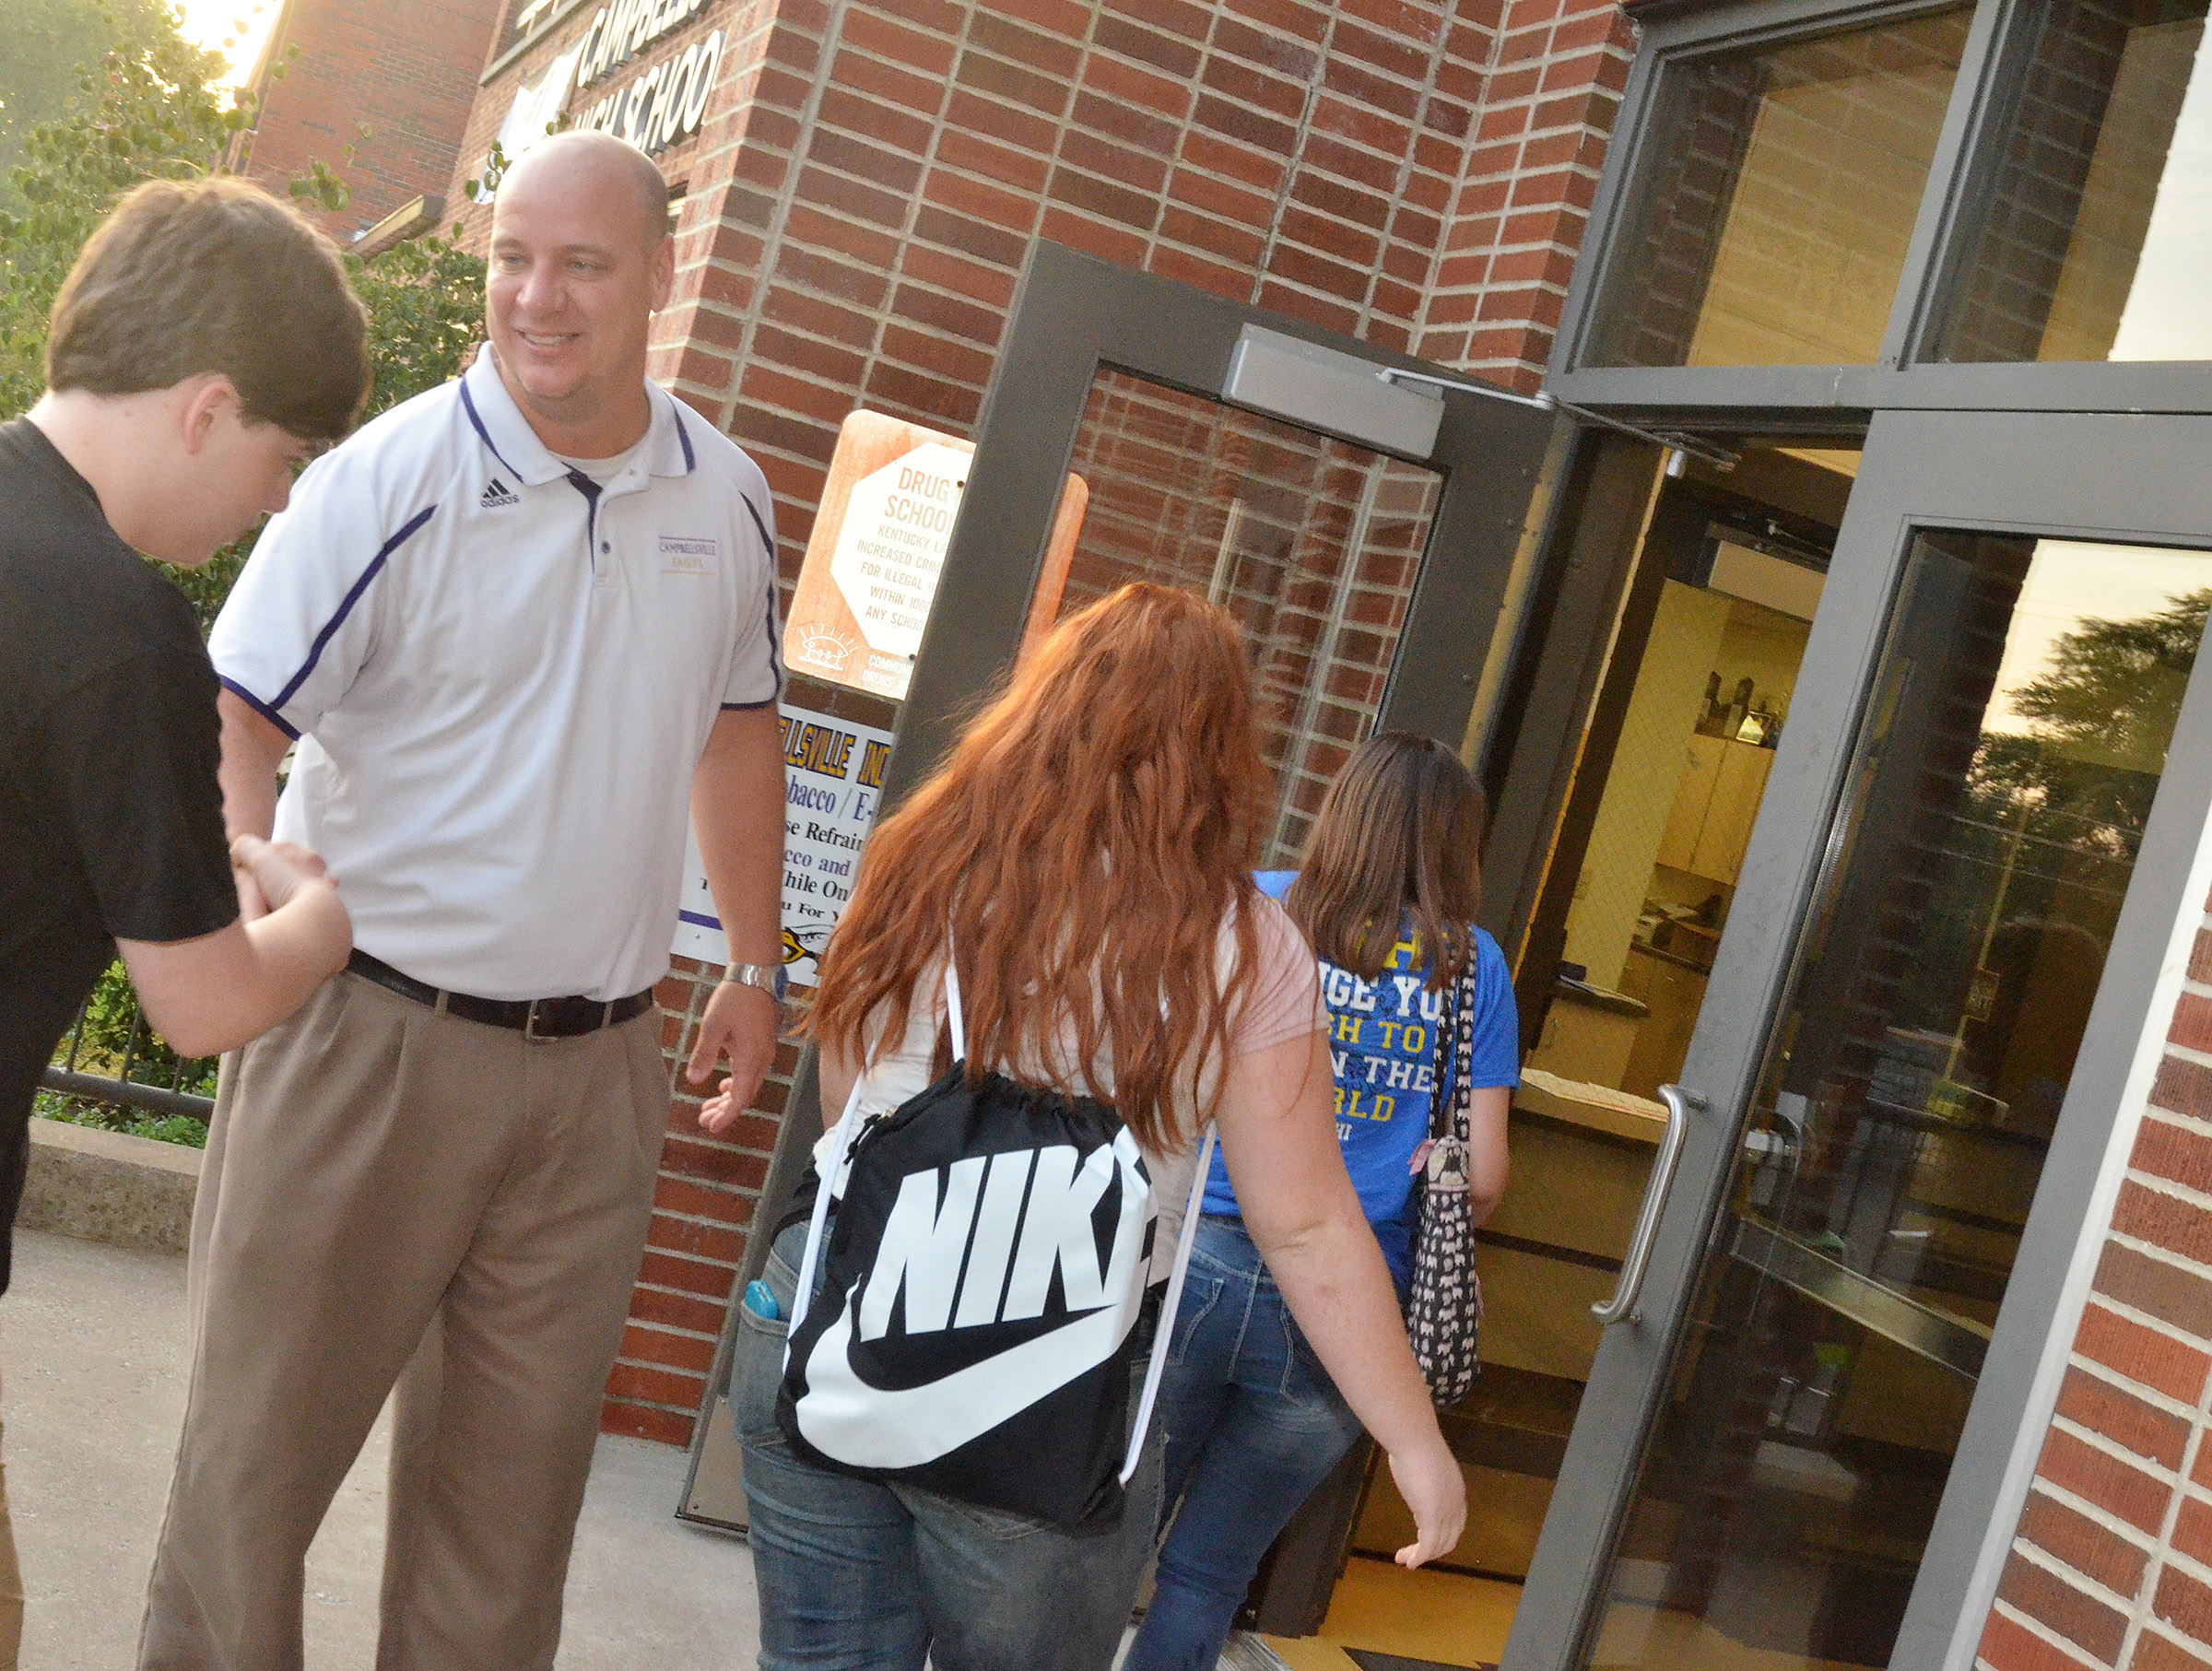 CHS Principal David Petett greets students on their third day of school.